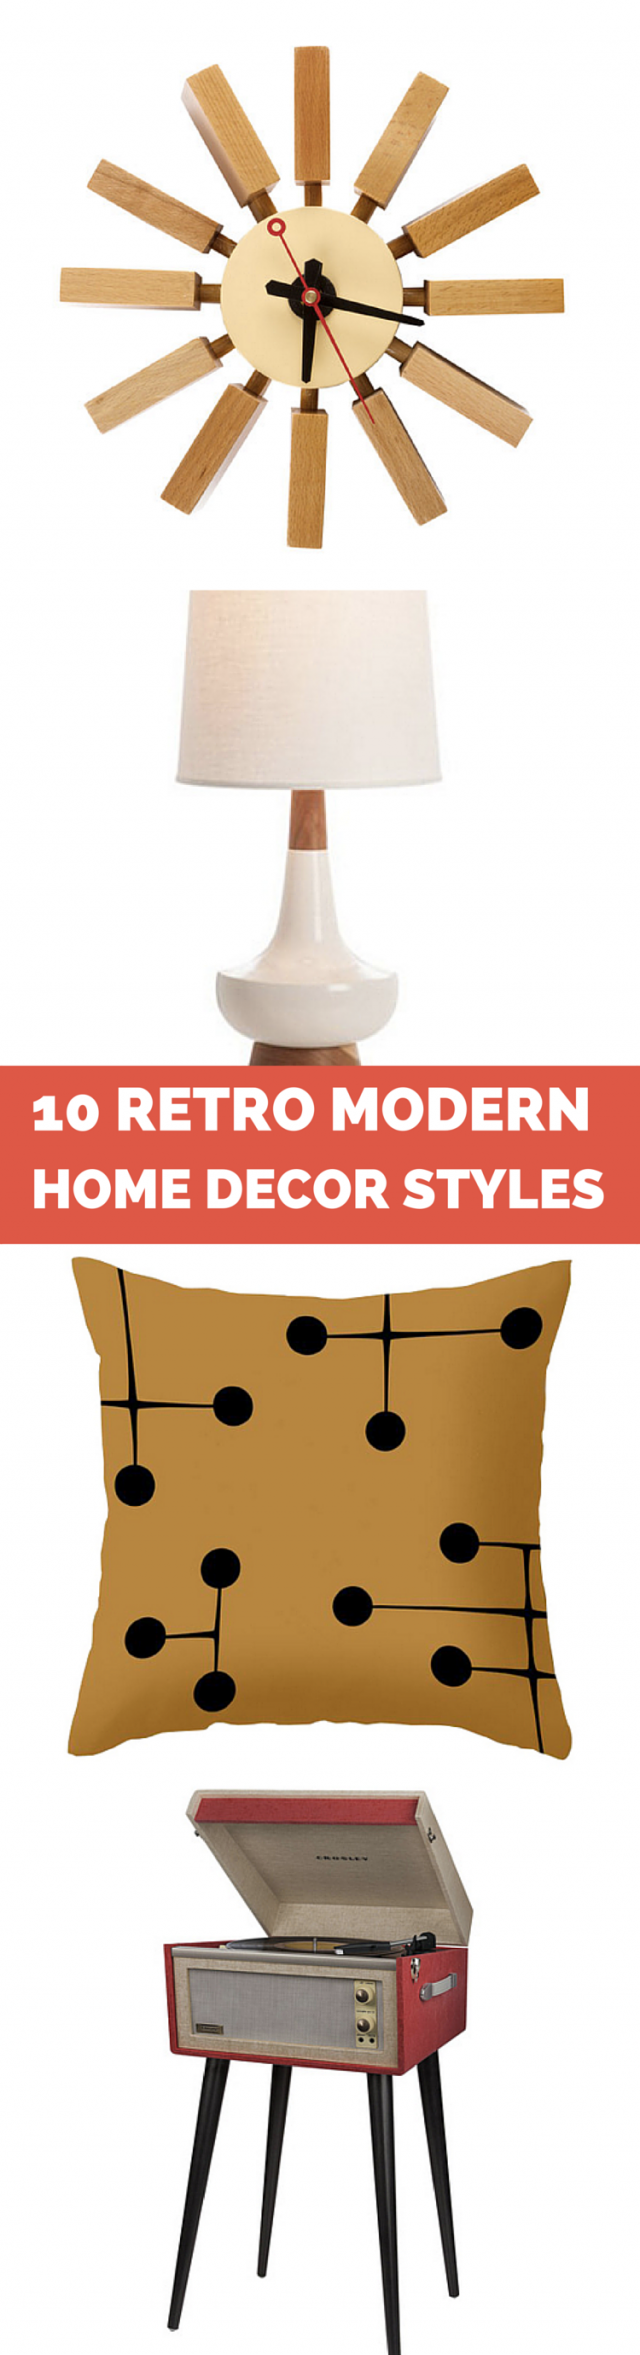 Retro Modern Home Decor